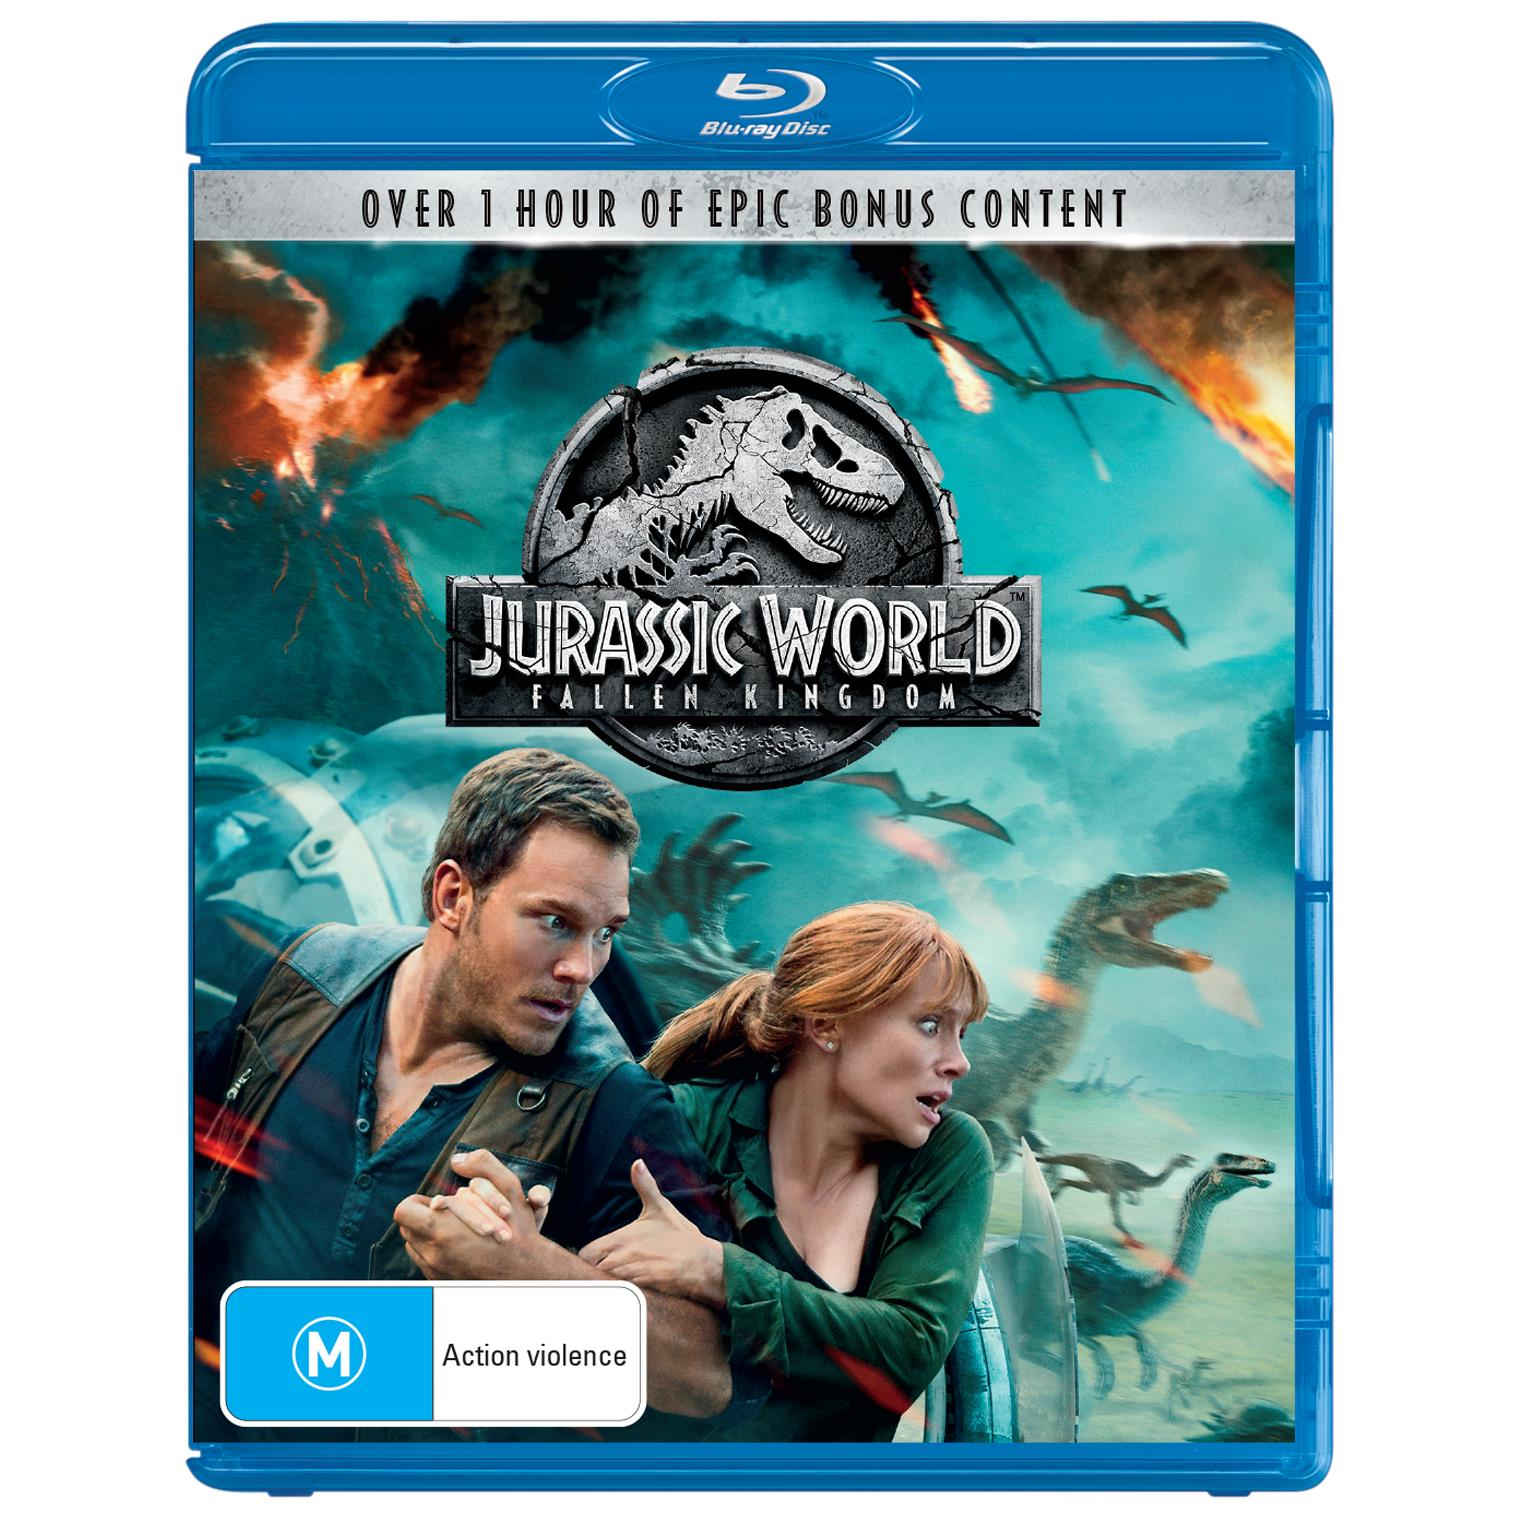 https://www.jbhifi.com.au/products/flight-2012-blu-ray  2020-10-13T00:25:31+11:00 daily  https://cdn.shopify.com/s/files/1/0024/9803/5810/products/438922-Product-0-I.jpg?v=1572273253  Flight https://www.jbhifi.com.au/products/cd-cole-j-4-your-eyez-only ...